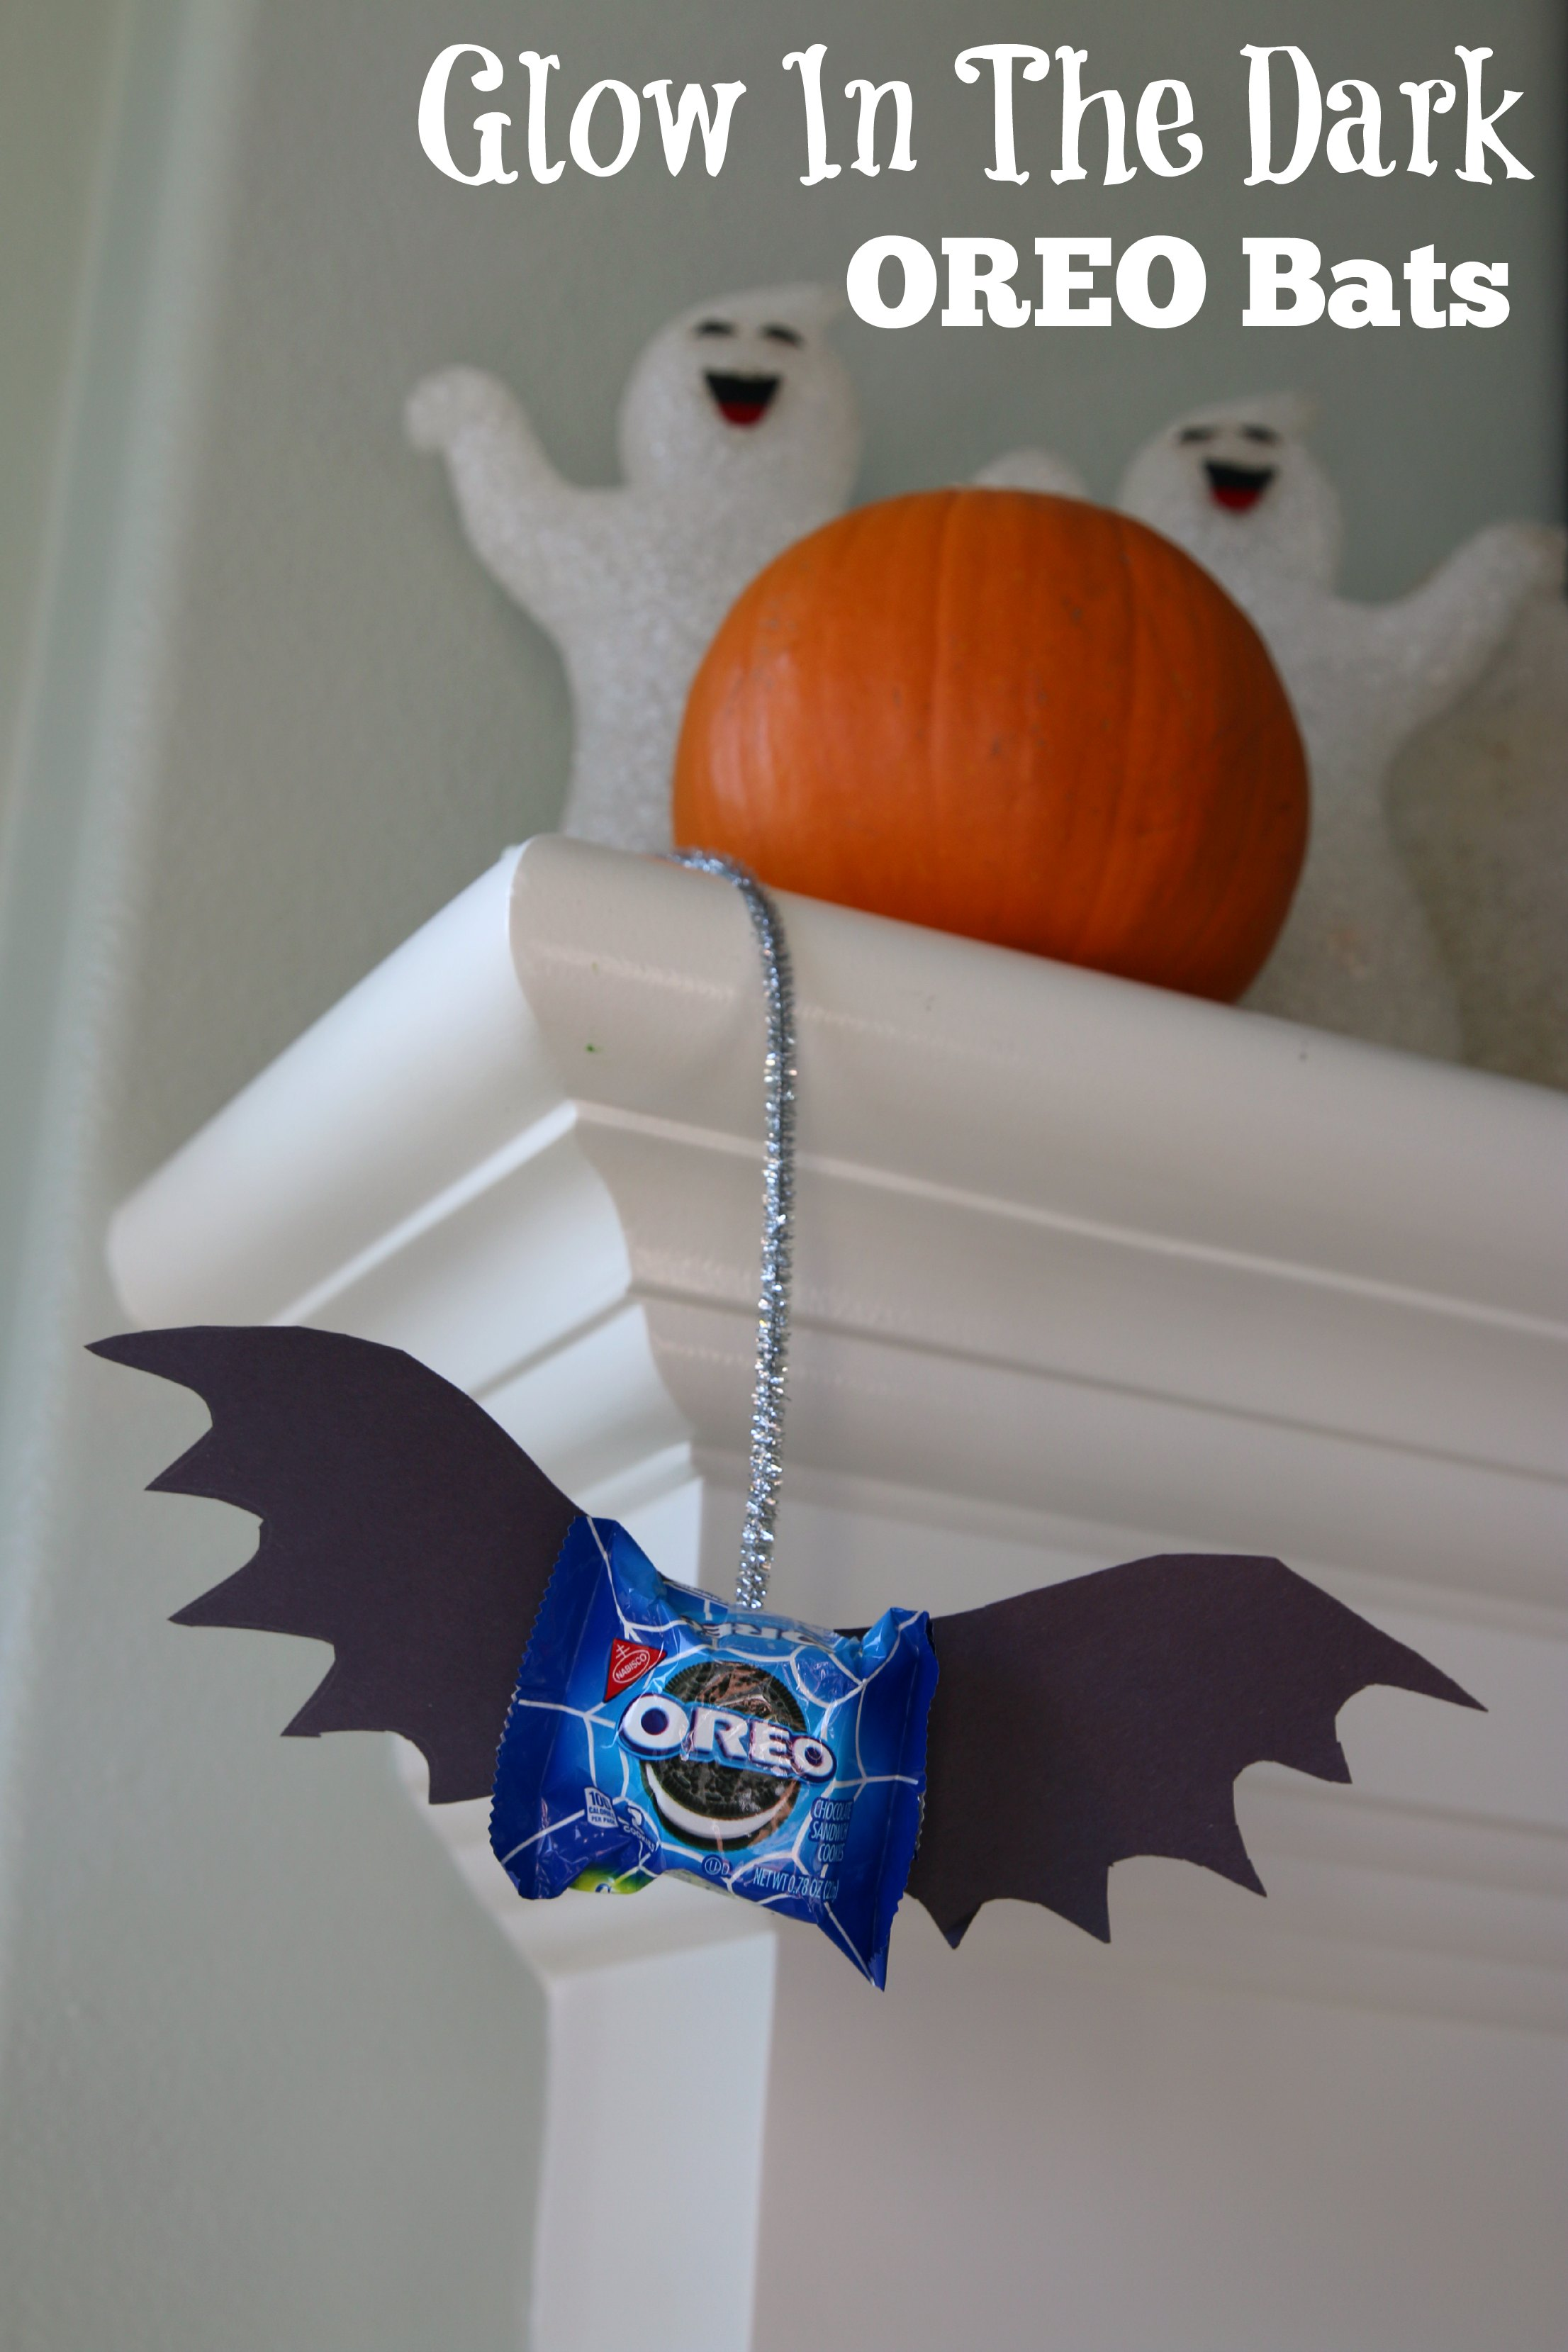 glow in the dark oreo bats